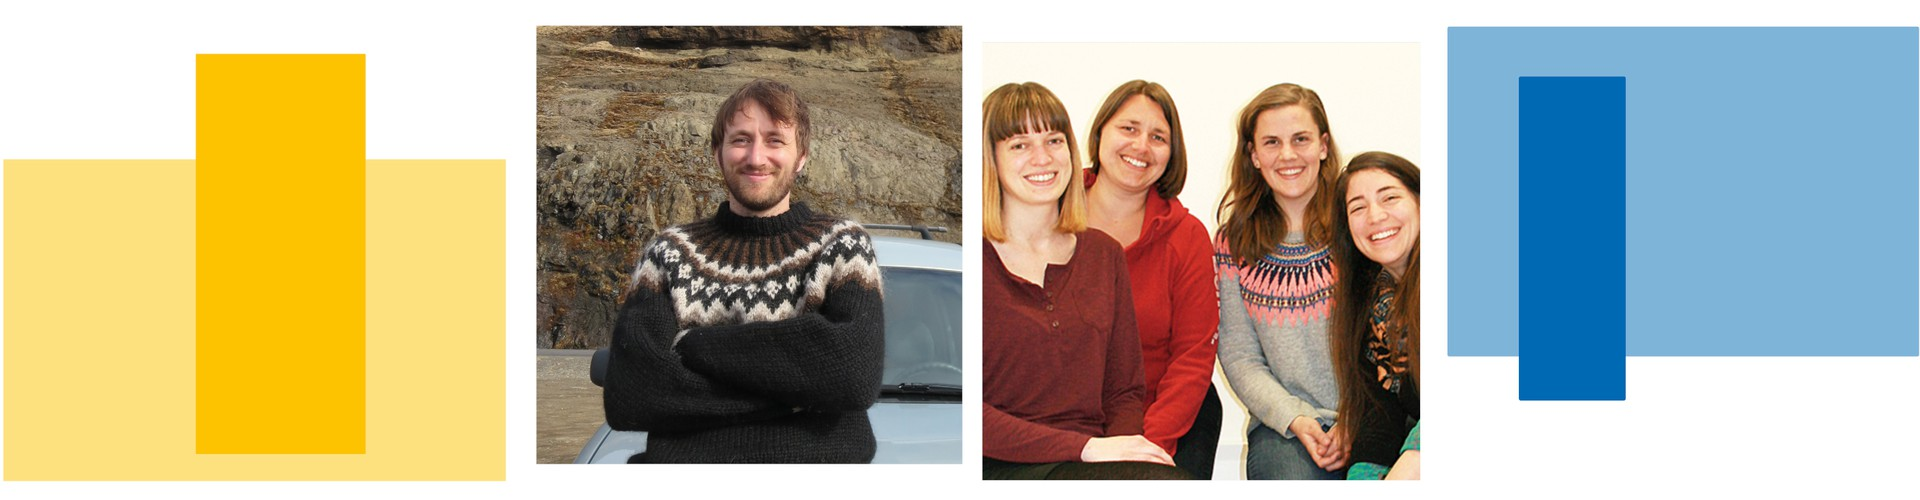 Winners of the EGU Public Engagement Grants 2019; Philip Heron (left) and Romana Hödl, Katrin Attermeyer, Laura E. Coulson, Astrid Harjung (right)